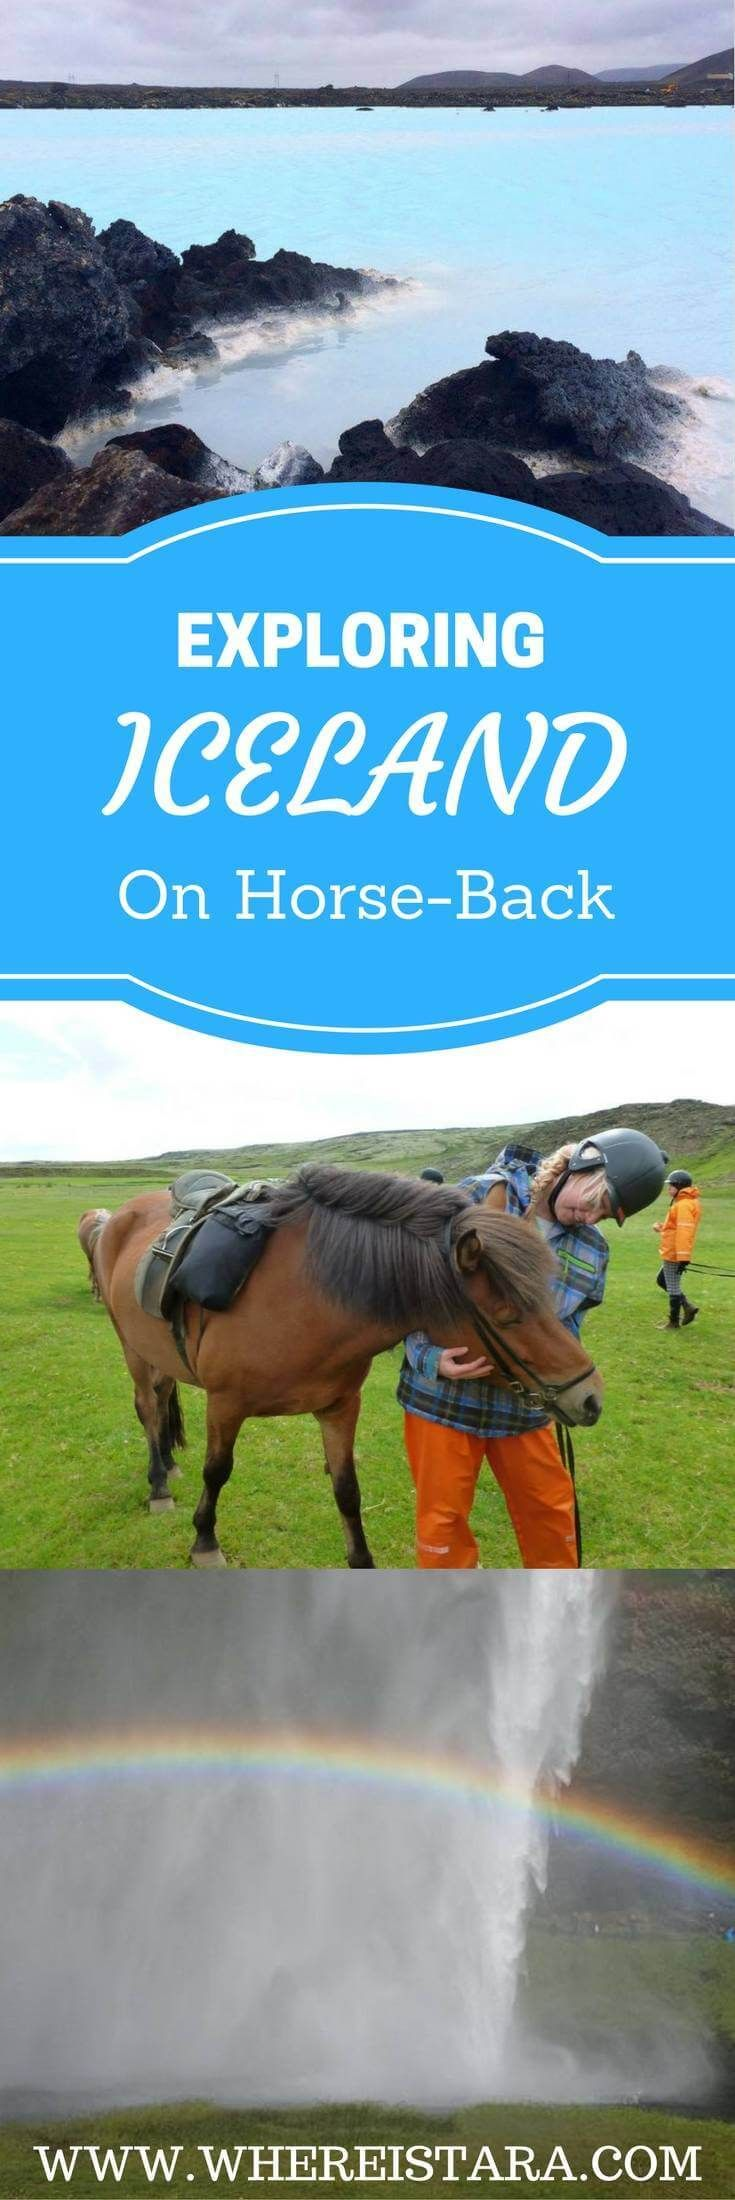 HORSE RIDING IN ICELAND, seeing Iceland from a different perspective. Things to do in Iceland, excursions in Iceland and exploring Reykjavik. From the Blue Lagoon to the countless waterfalls, this is the land of fire and ice.